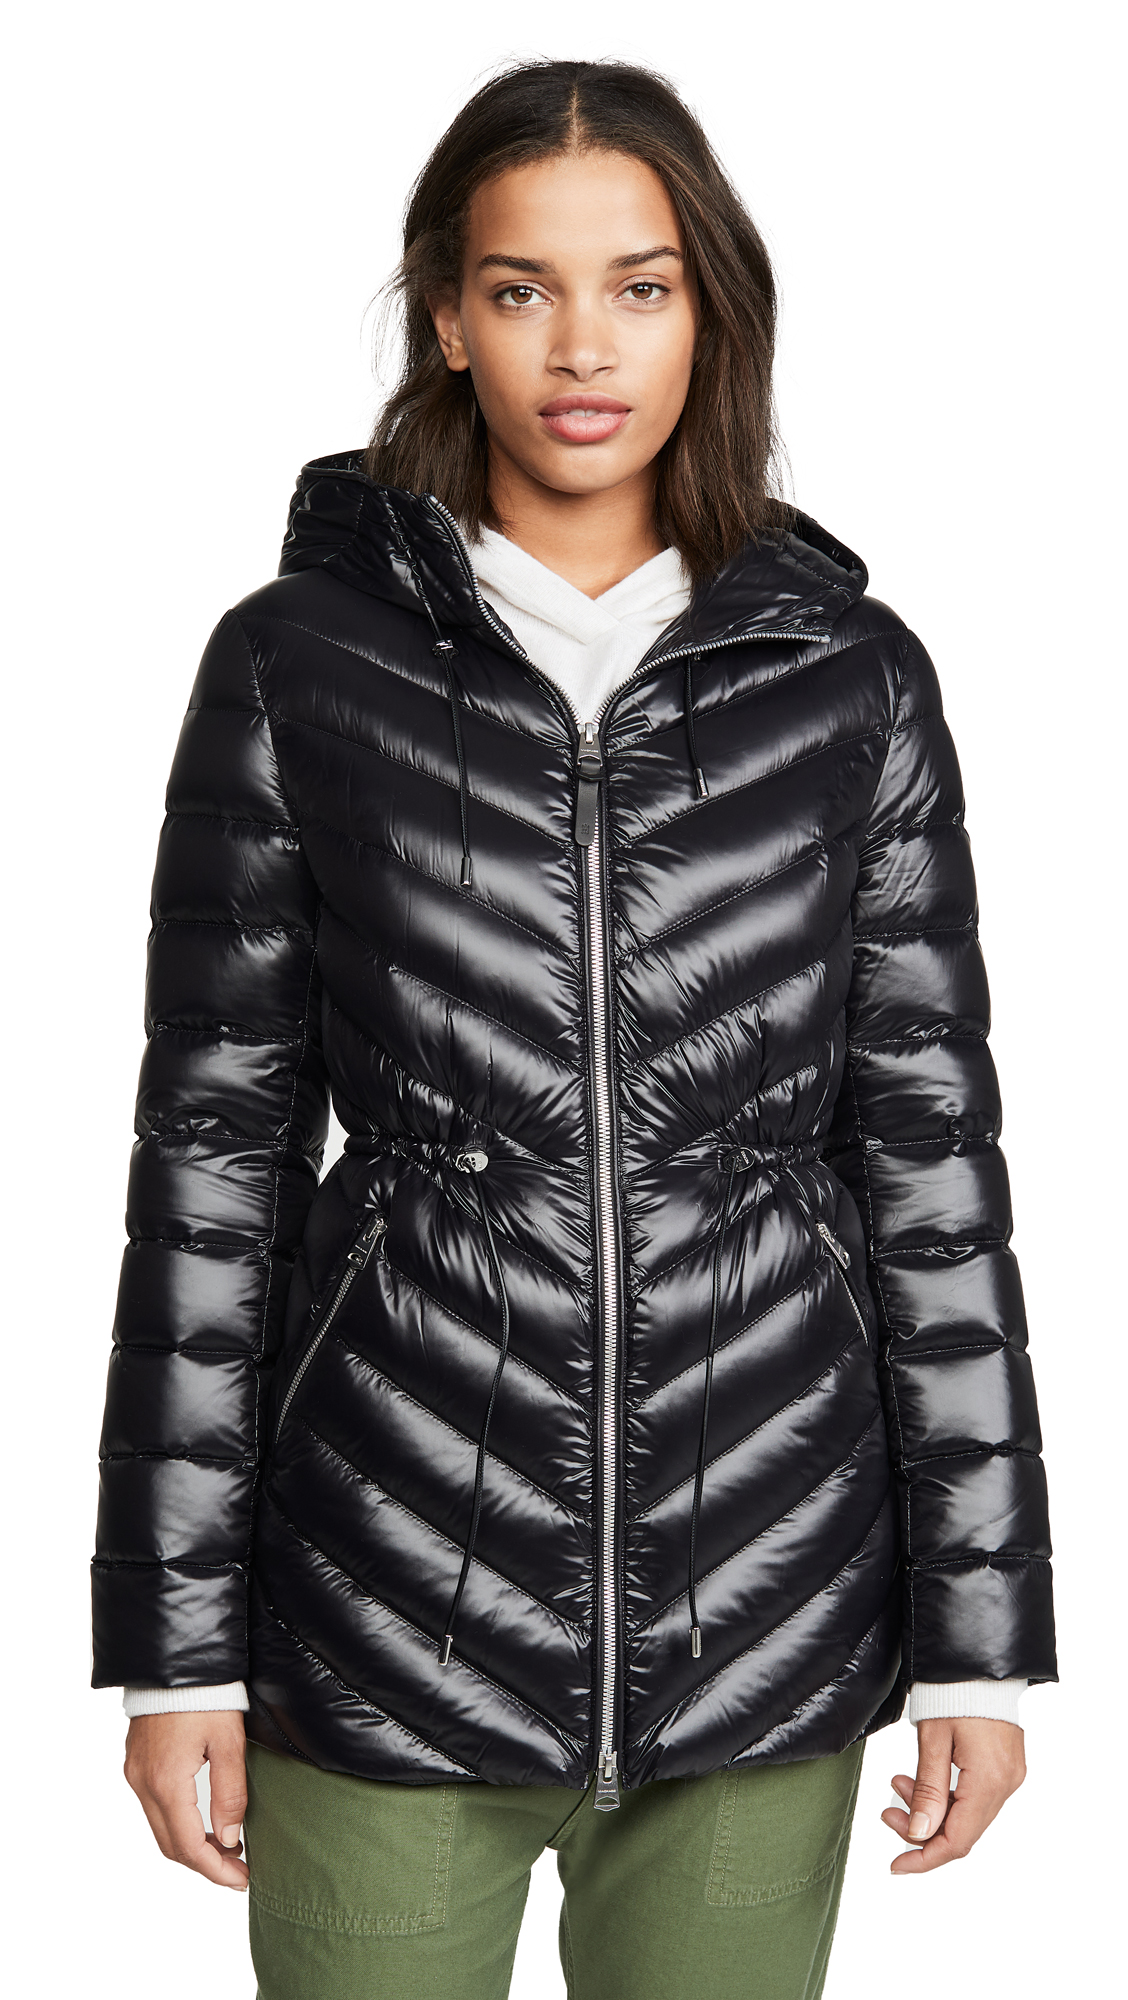 Buy Mackage Tara Jacket online beautiful Mackage Jackets, Coats, Down Jackets